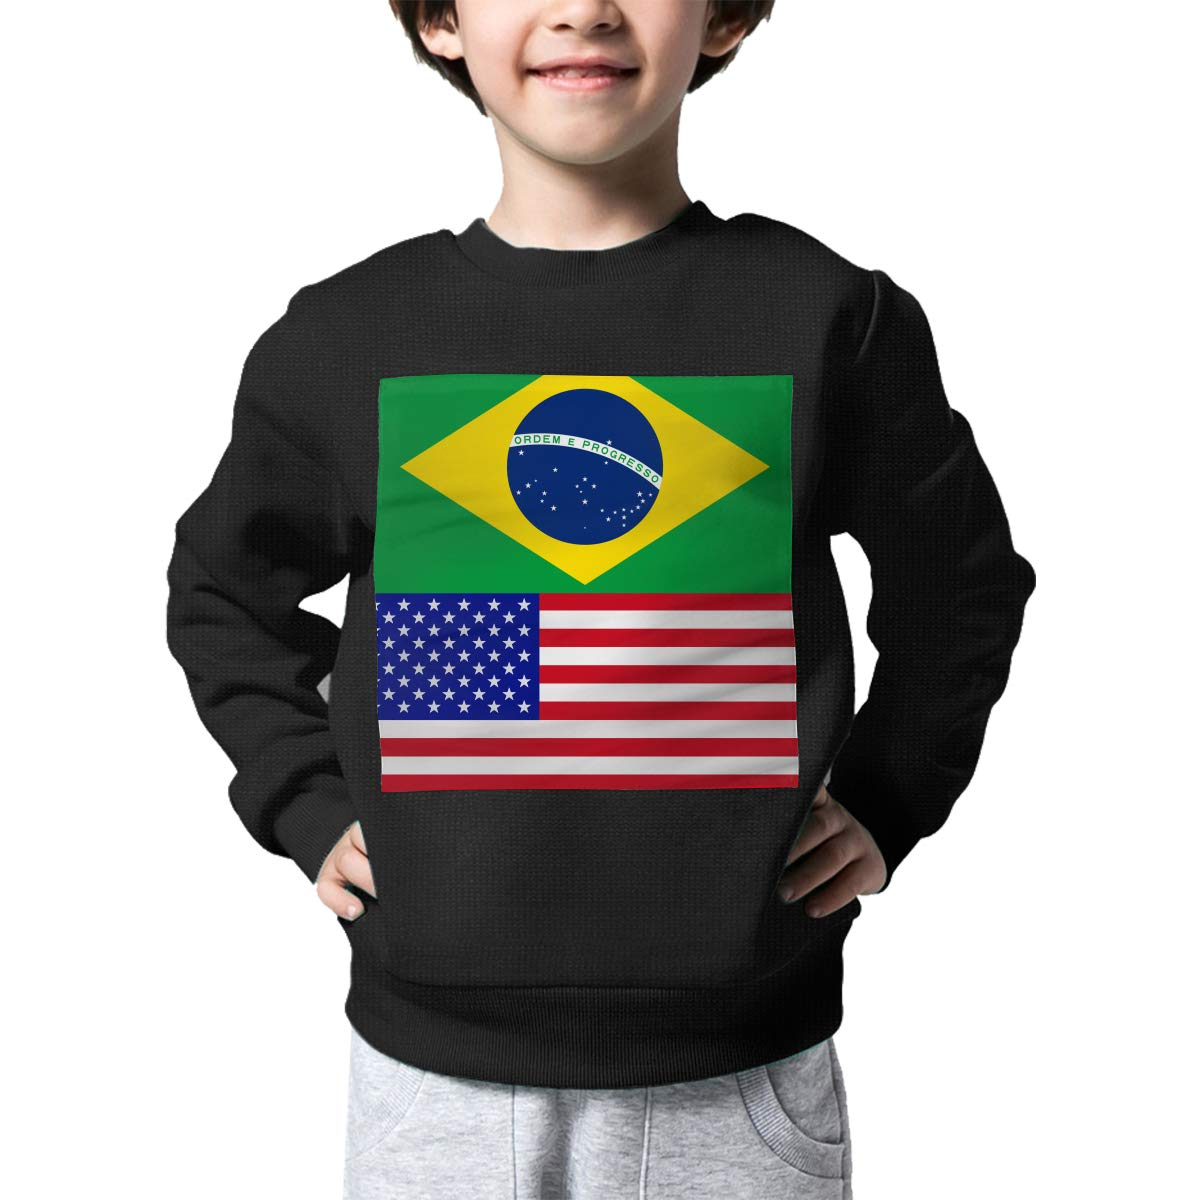 NJKM5MJ Boys Girls Brazil-American Proud Lovely Sweaters Soft Warm Unisex Children Kids Sweater